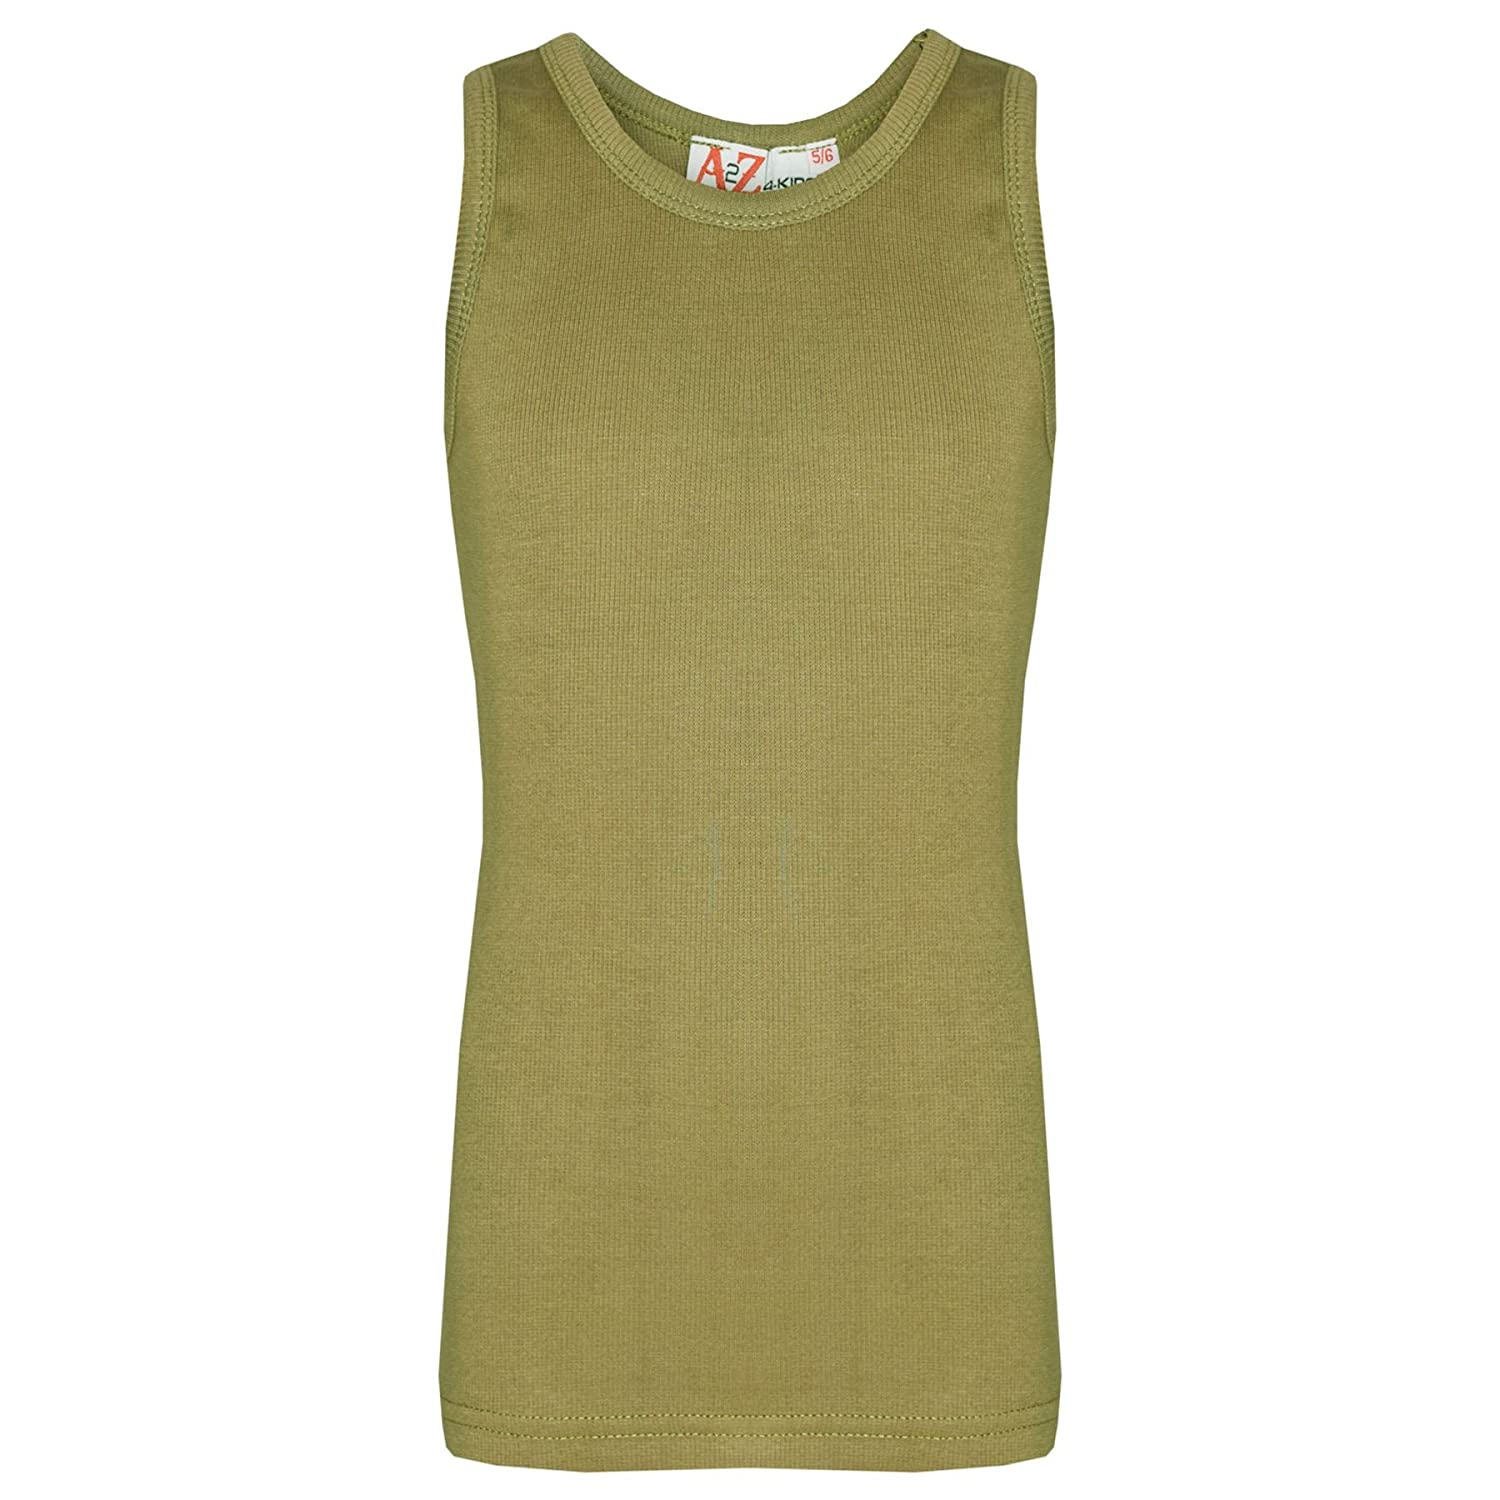 A2Z 4 Kids® Kids Girls Ribbed Vest Top Designer's 100% Thick Cotton Fashion Tank Tops T Shirts New Age 2 3 4 5 6 7 8 9 10 11 12 13 Years